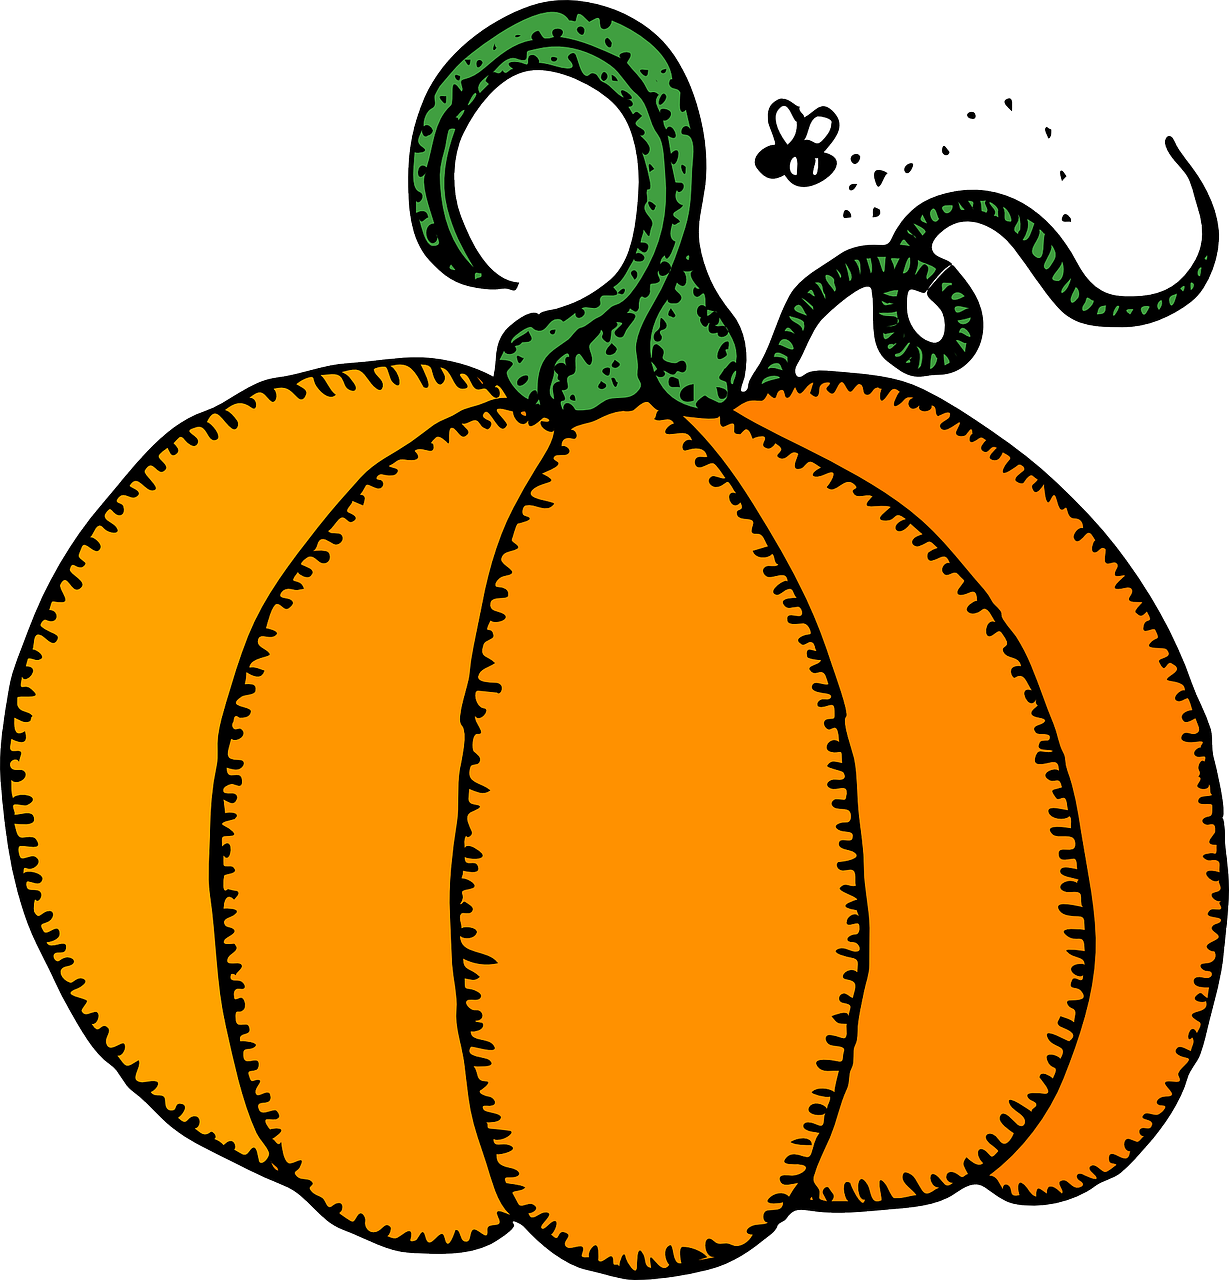 Mustache pumpkin clipart image download Autumn Fun – DoReMi Piano image download